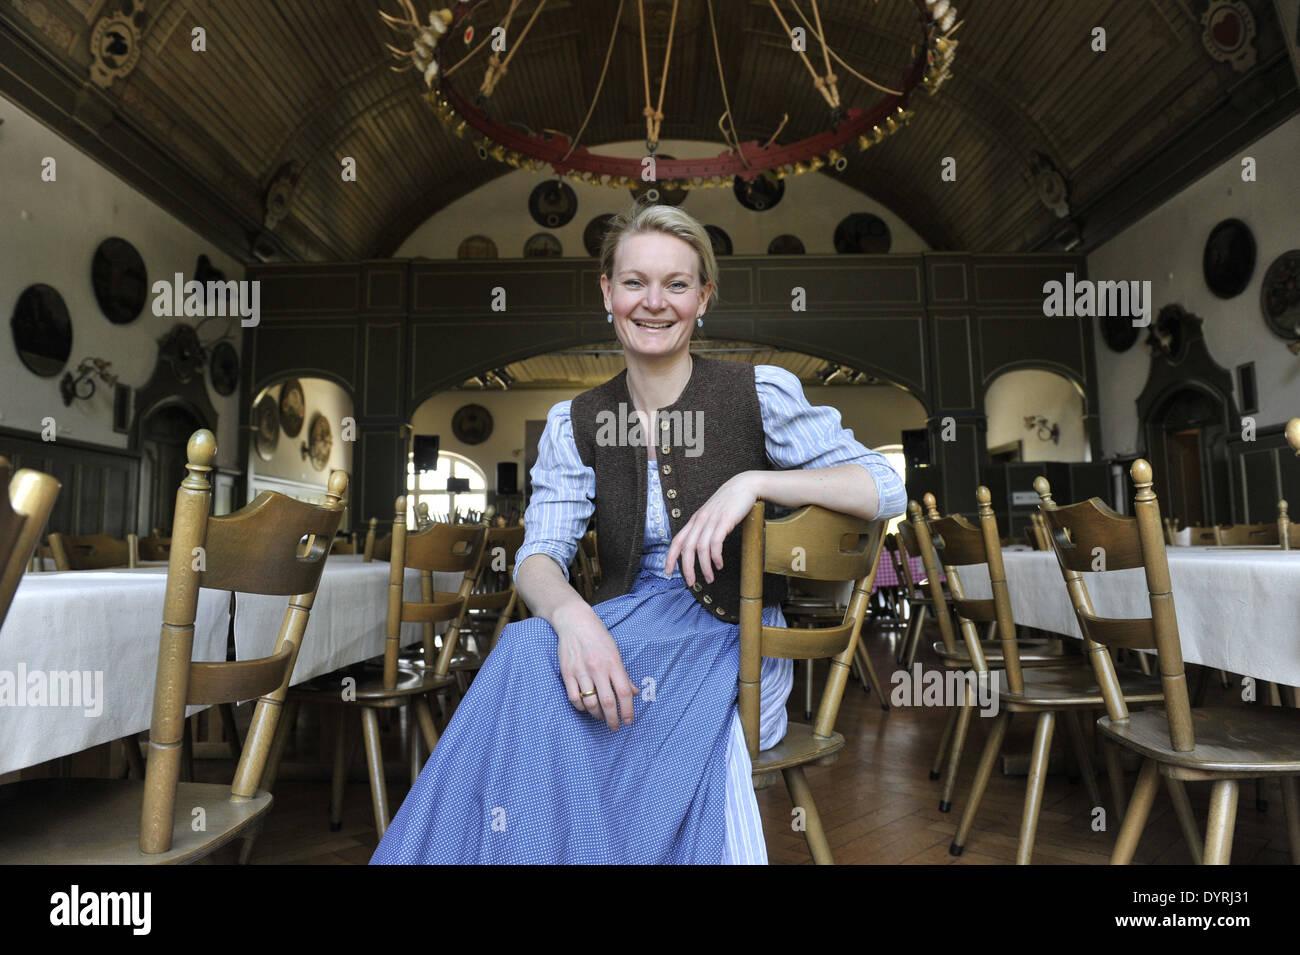 Landlady Gigi Pfundmair in the banquet hall of the 'Muenchner Haupt', 2011 - Stock Image